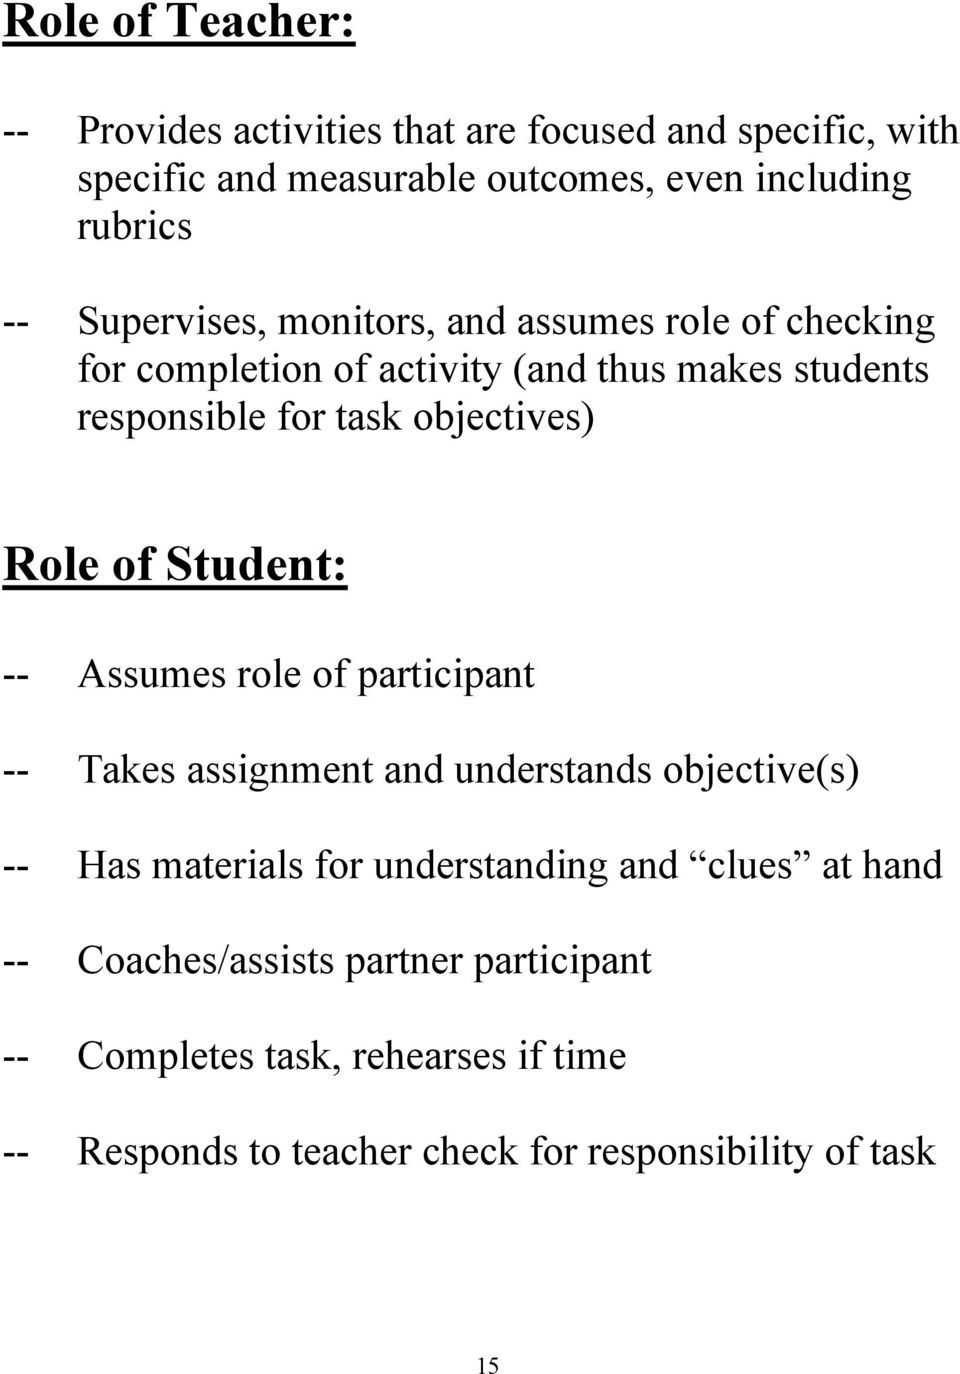 Role of Student: -- Assumes role of participant -- Takes assignment and understands objective(s) -- Has materials for understanding and